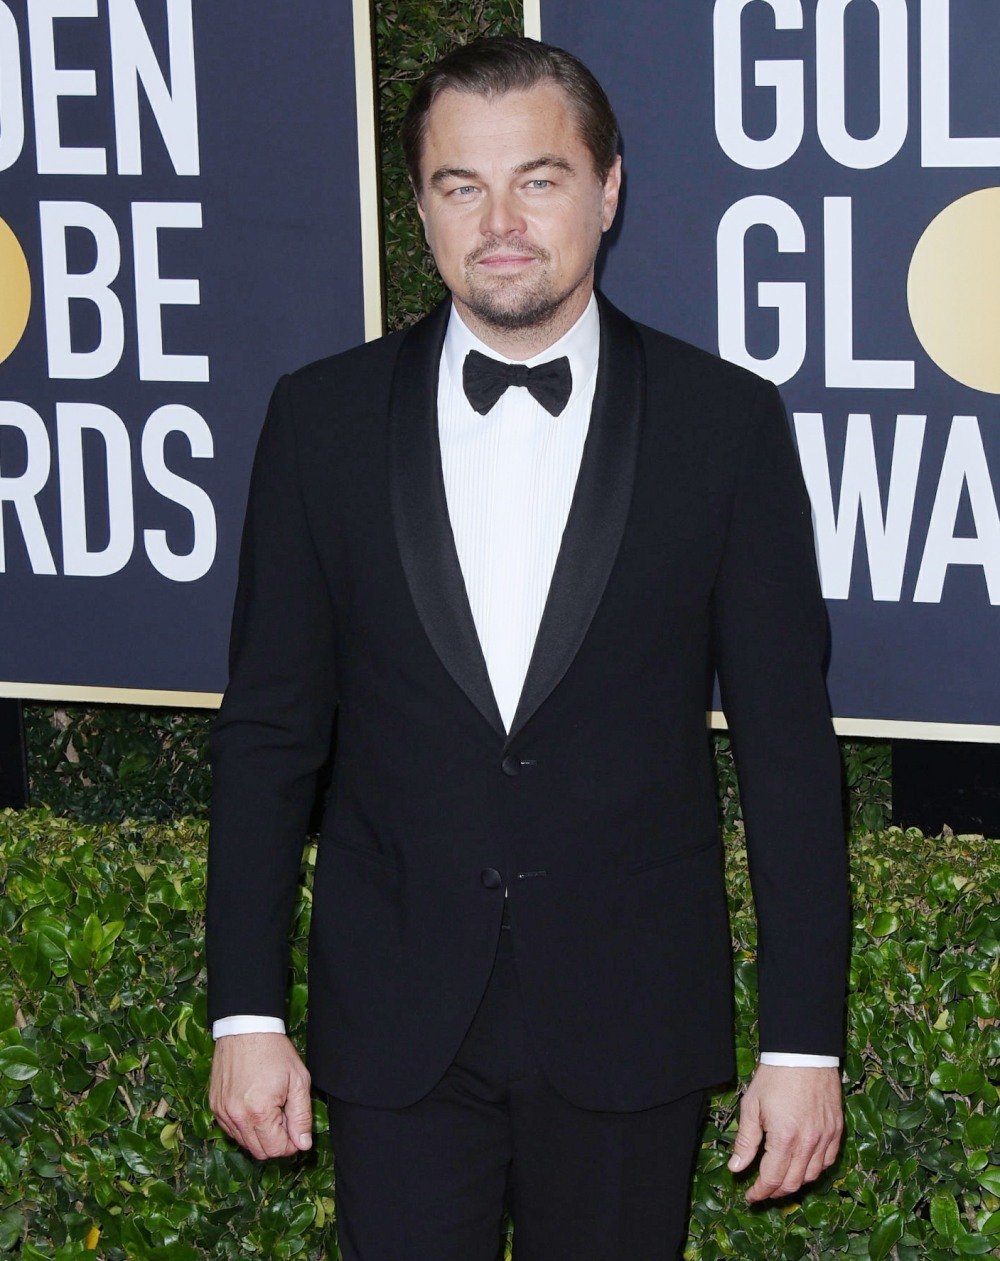 Leonardo DiCaprio attends the 77th Annual Golden Globe Awards at The Beverly Hilton Hotel on January 05, 2020 in Beverly Hills, California © Jill Johnson/jpistudios.com